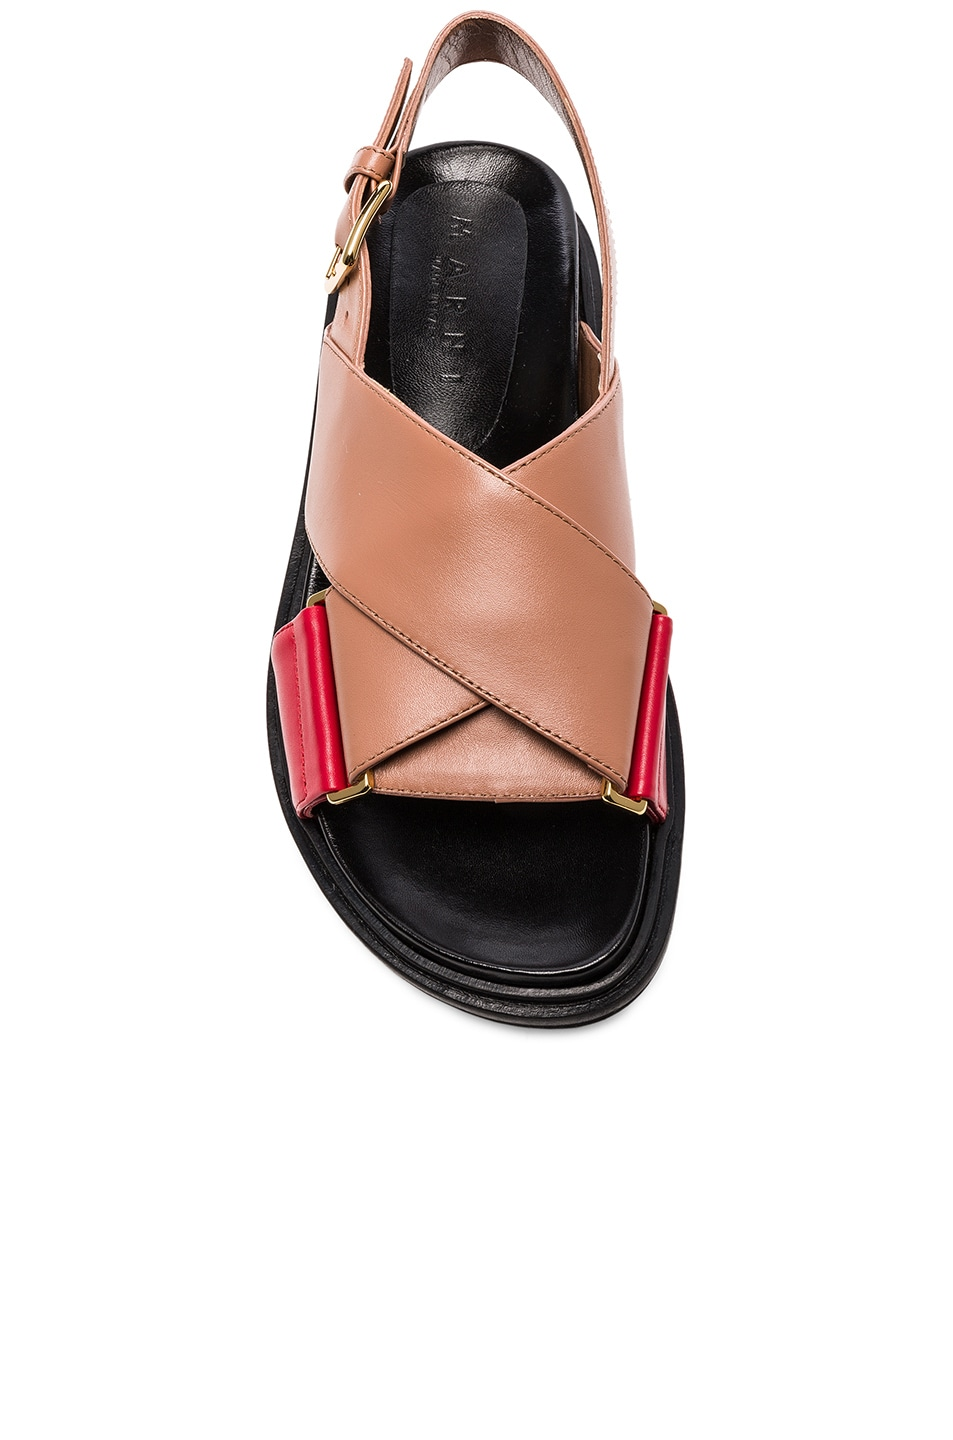 Image 4 of Marni Leather Fussbett Sandals in Cameo & Indian Red